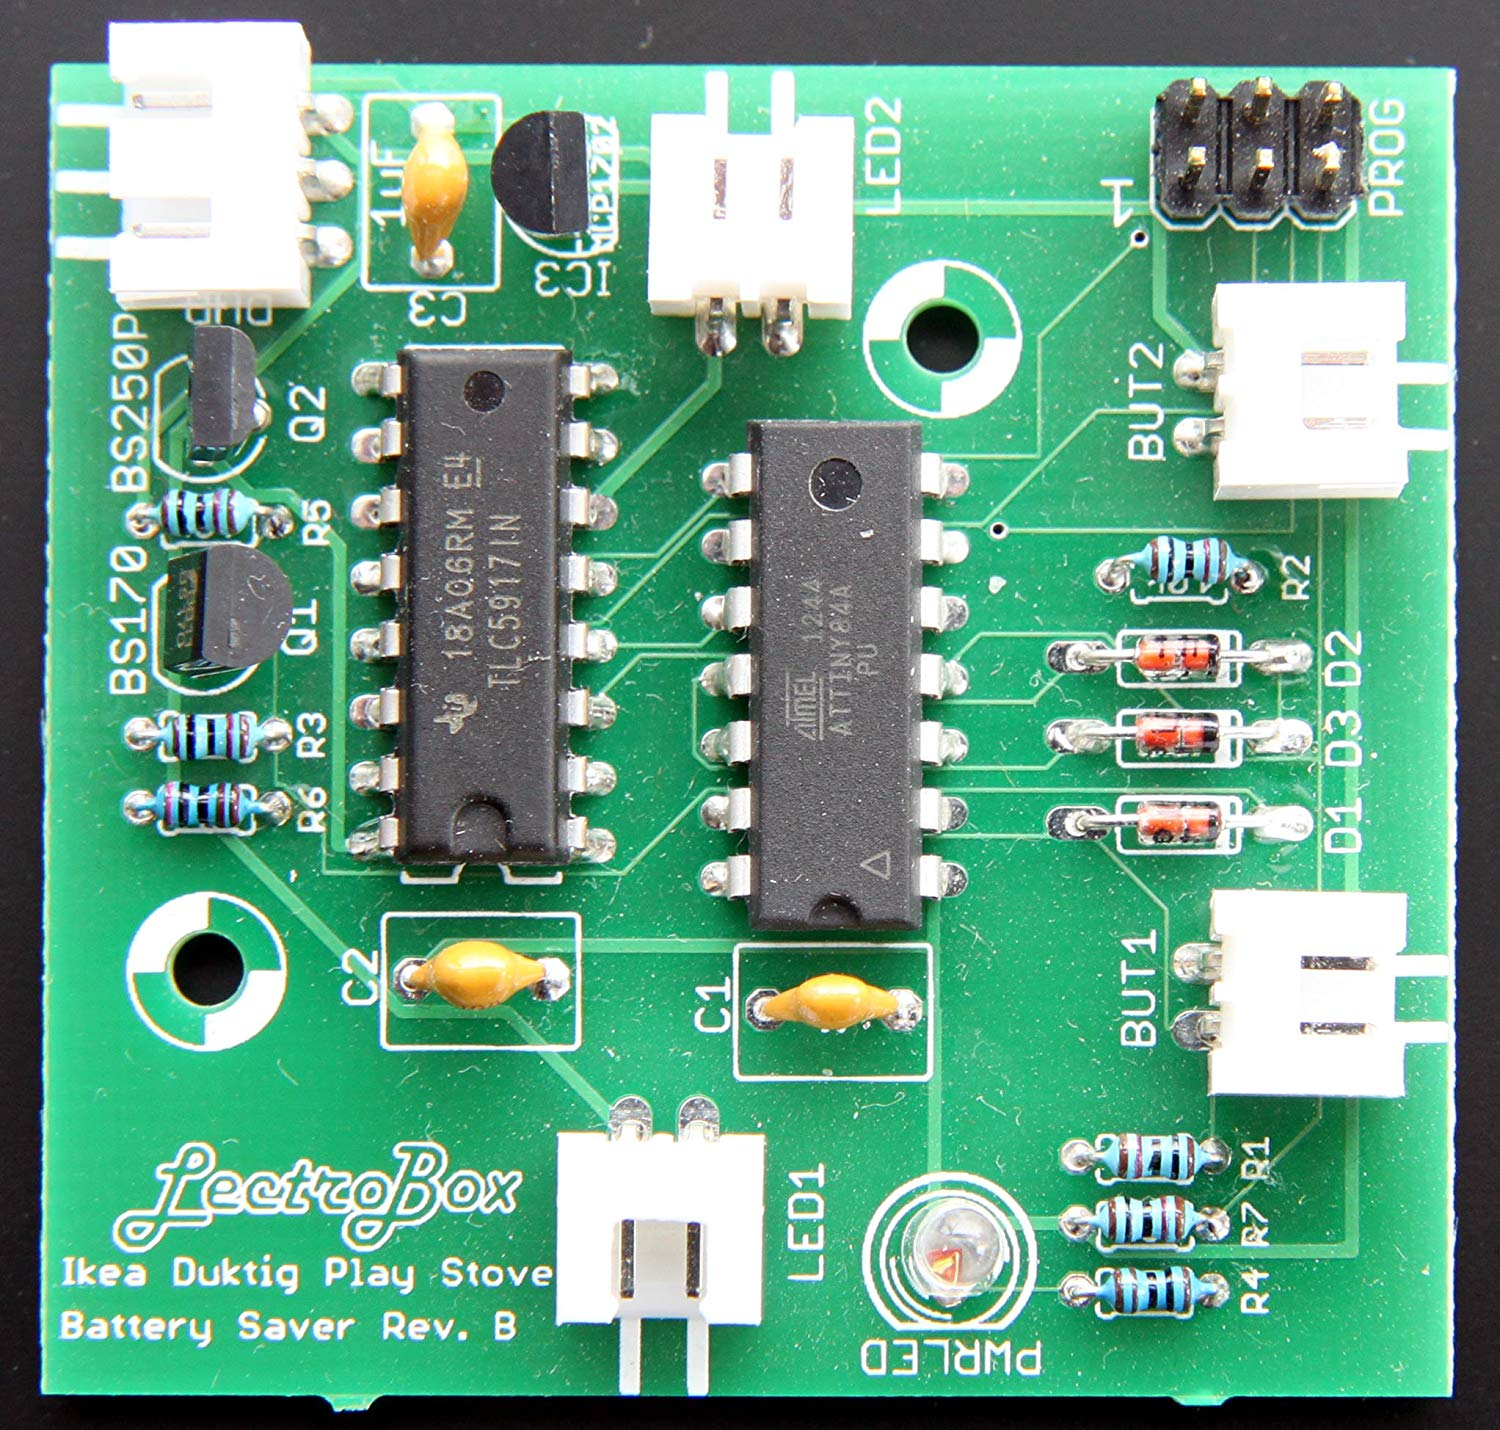 Ikea Duktig Play Stove Battery Saver And Replacement Buttons Electronic Circuit Board Toy Pcb Driver Previous